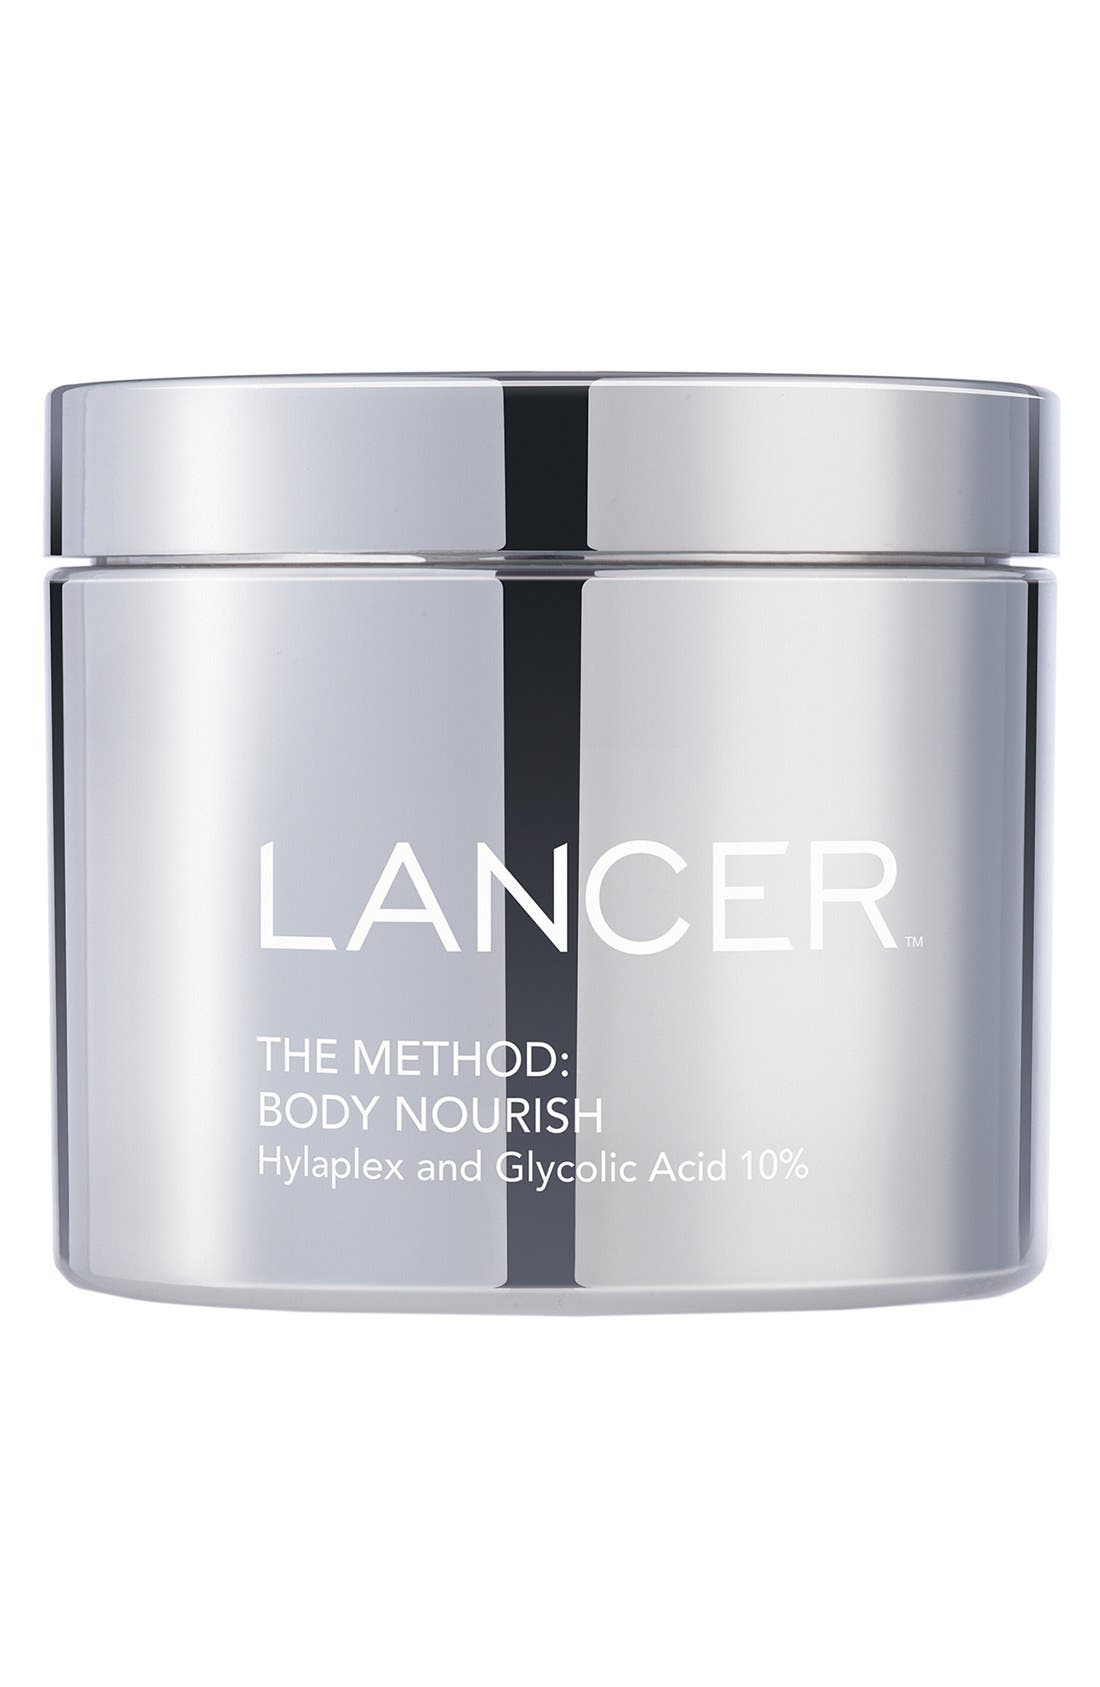 LANCER Skincare The Method Body Nourish Créme